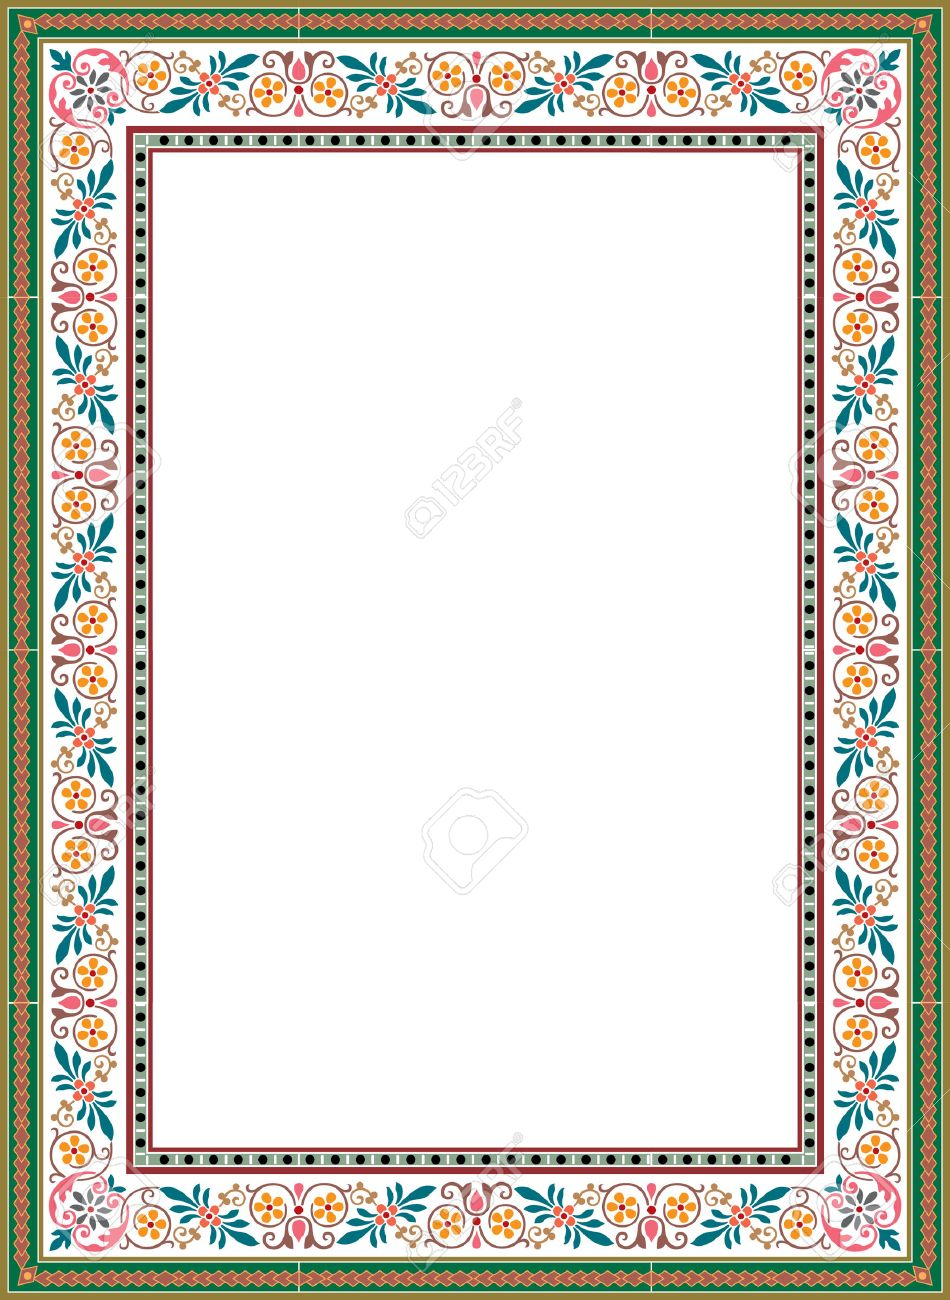 floral ornament border frame, colored Stock Vector - 23185916